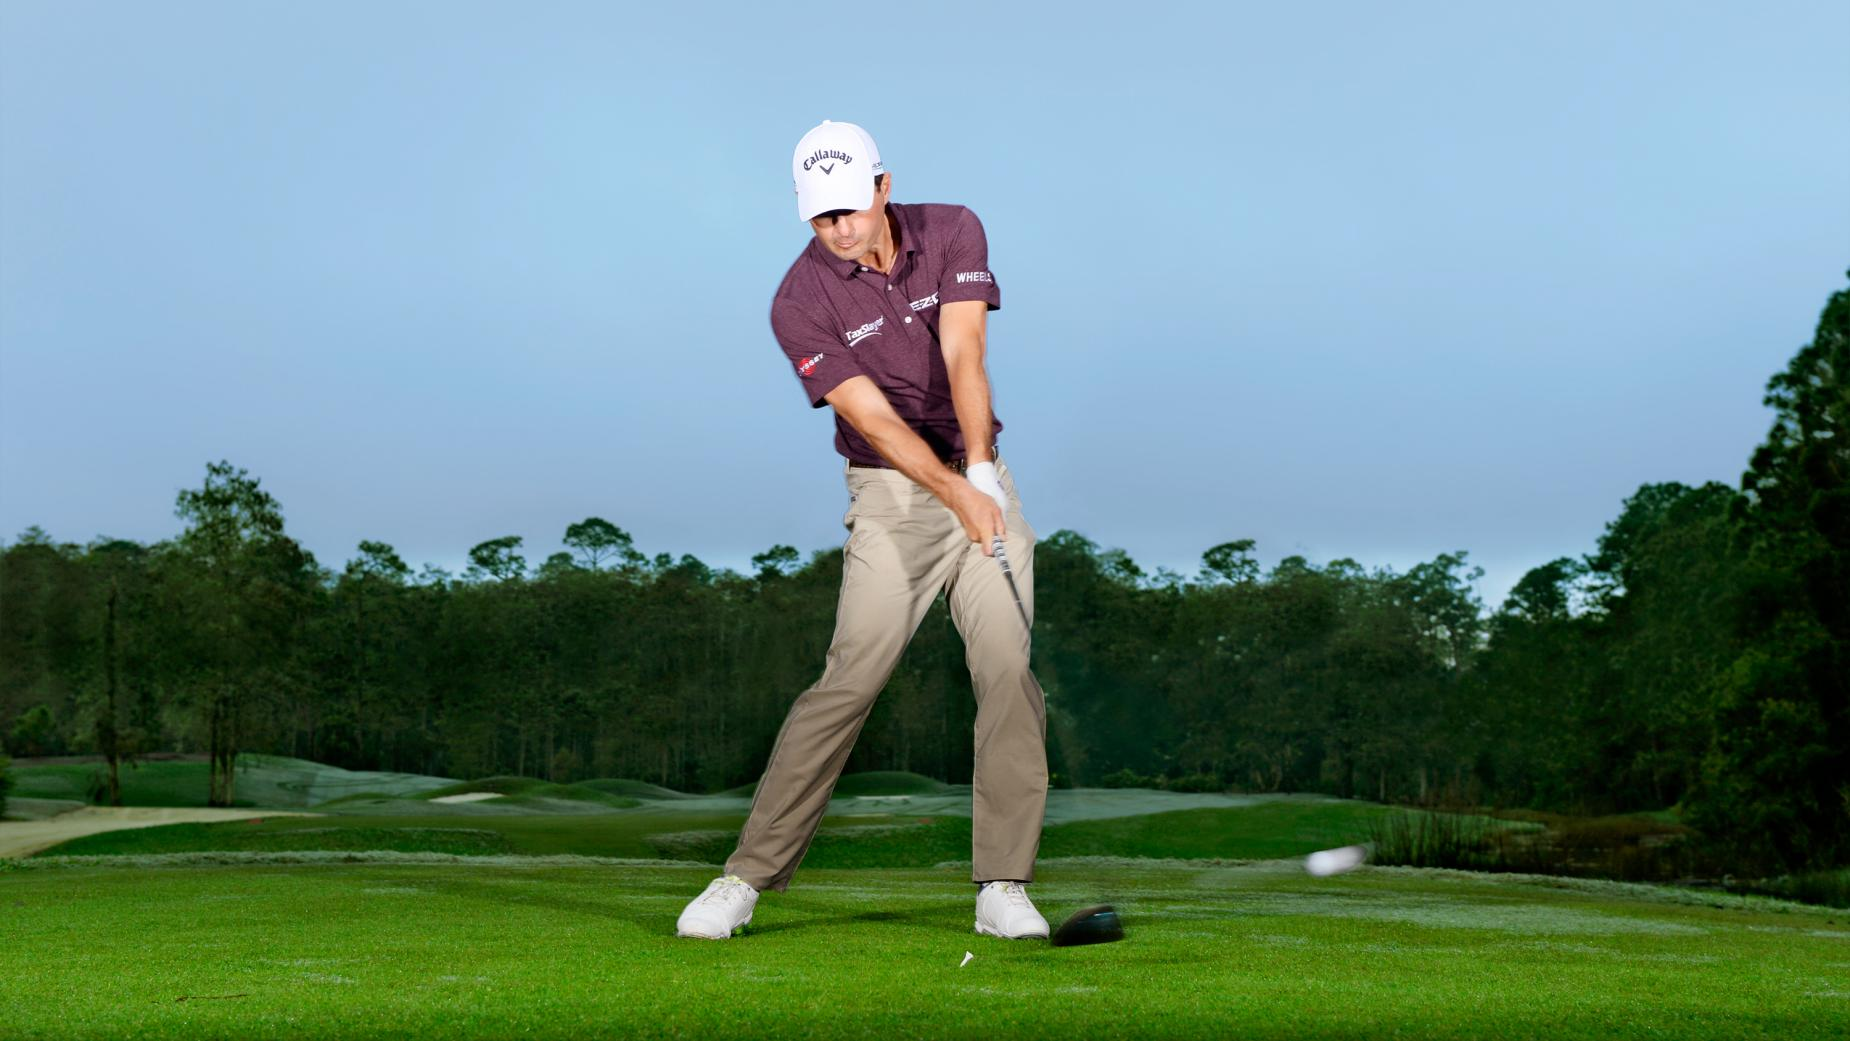 Kevin-Kisner-windy-conditions-tout.jpg